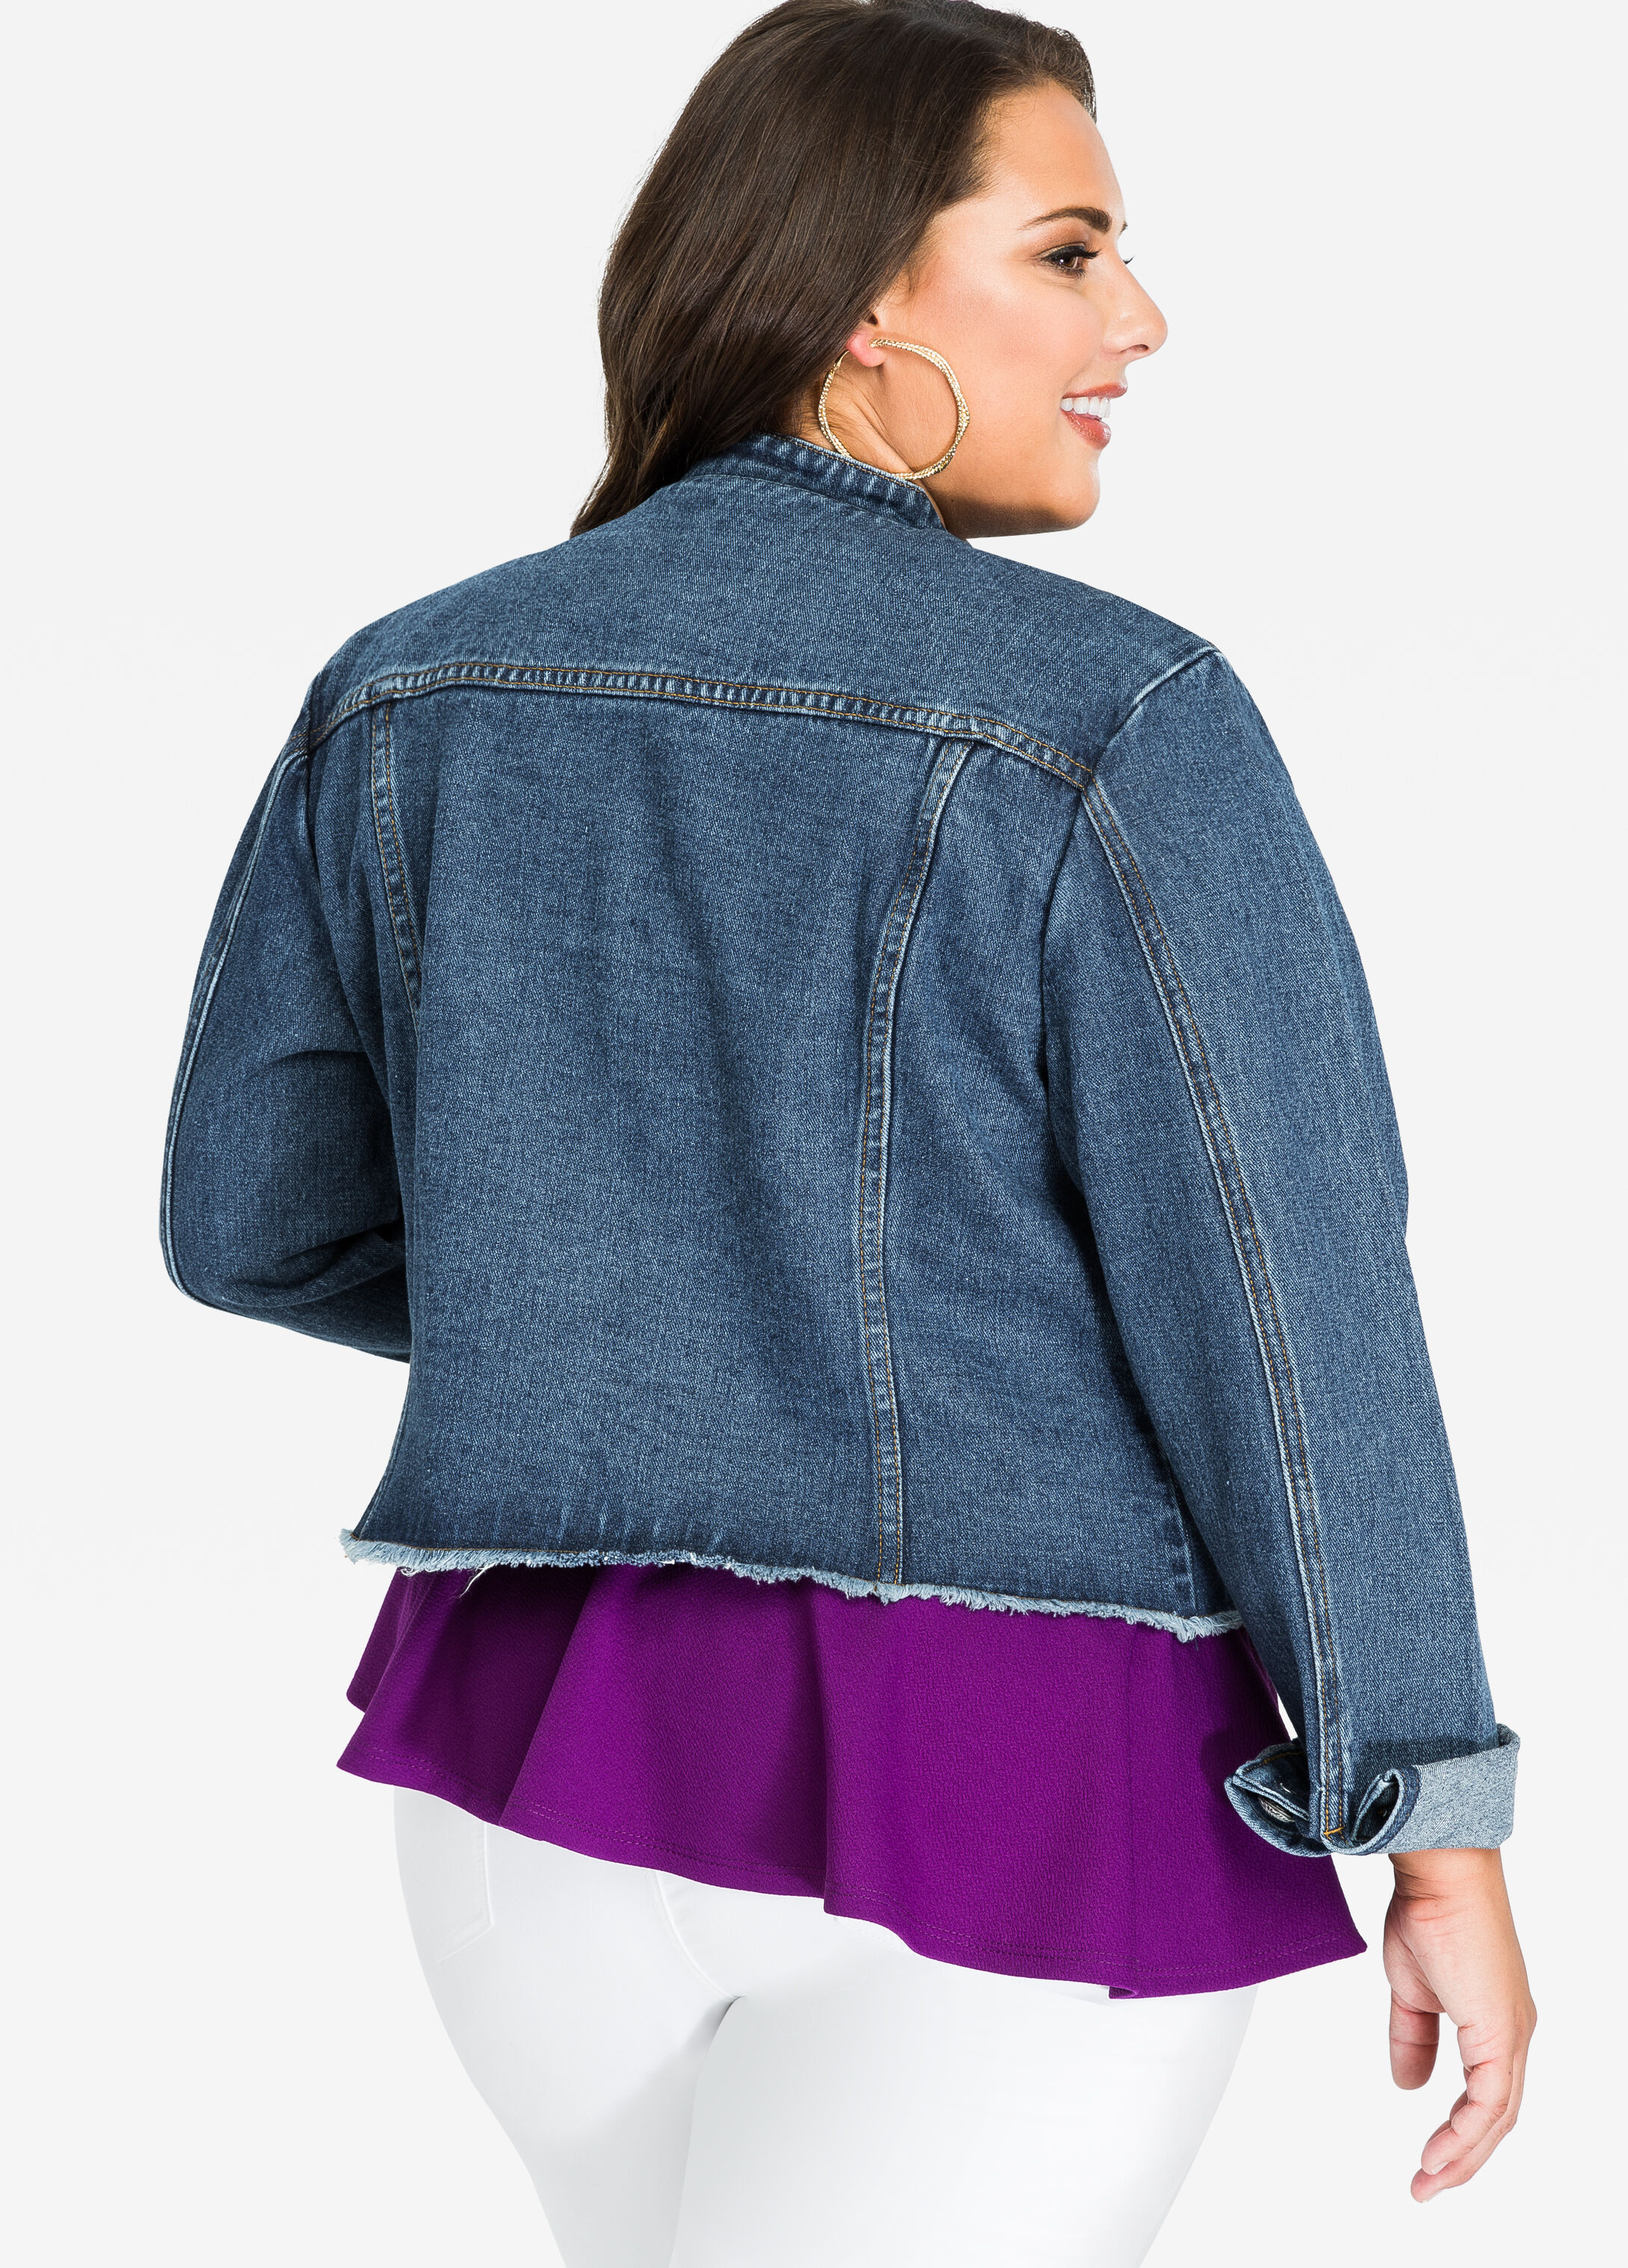 Long Sleeve Mandarin Collar Jean Jacket